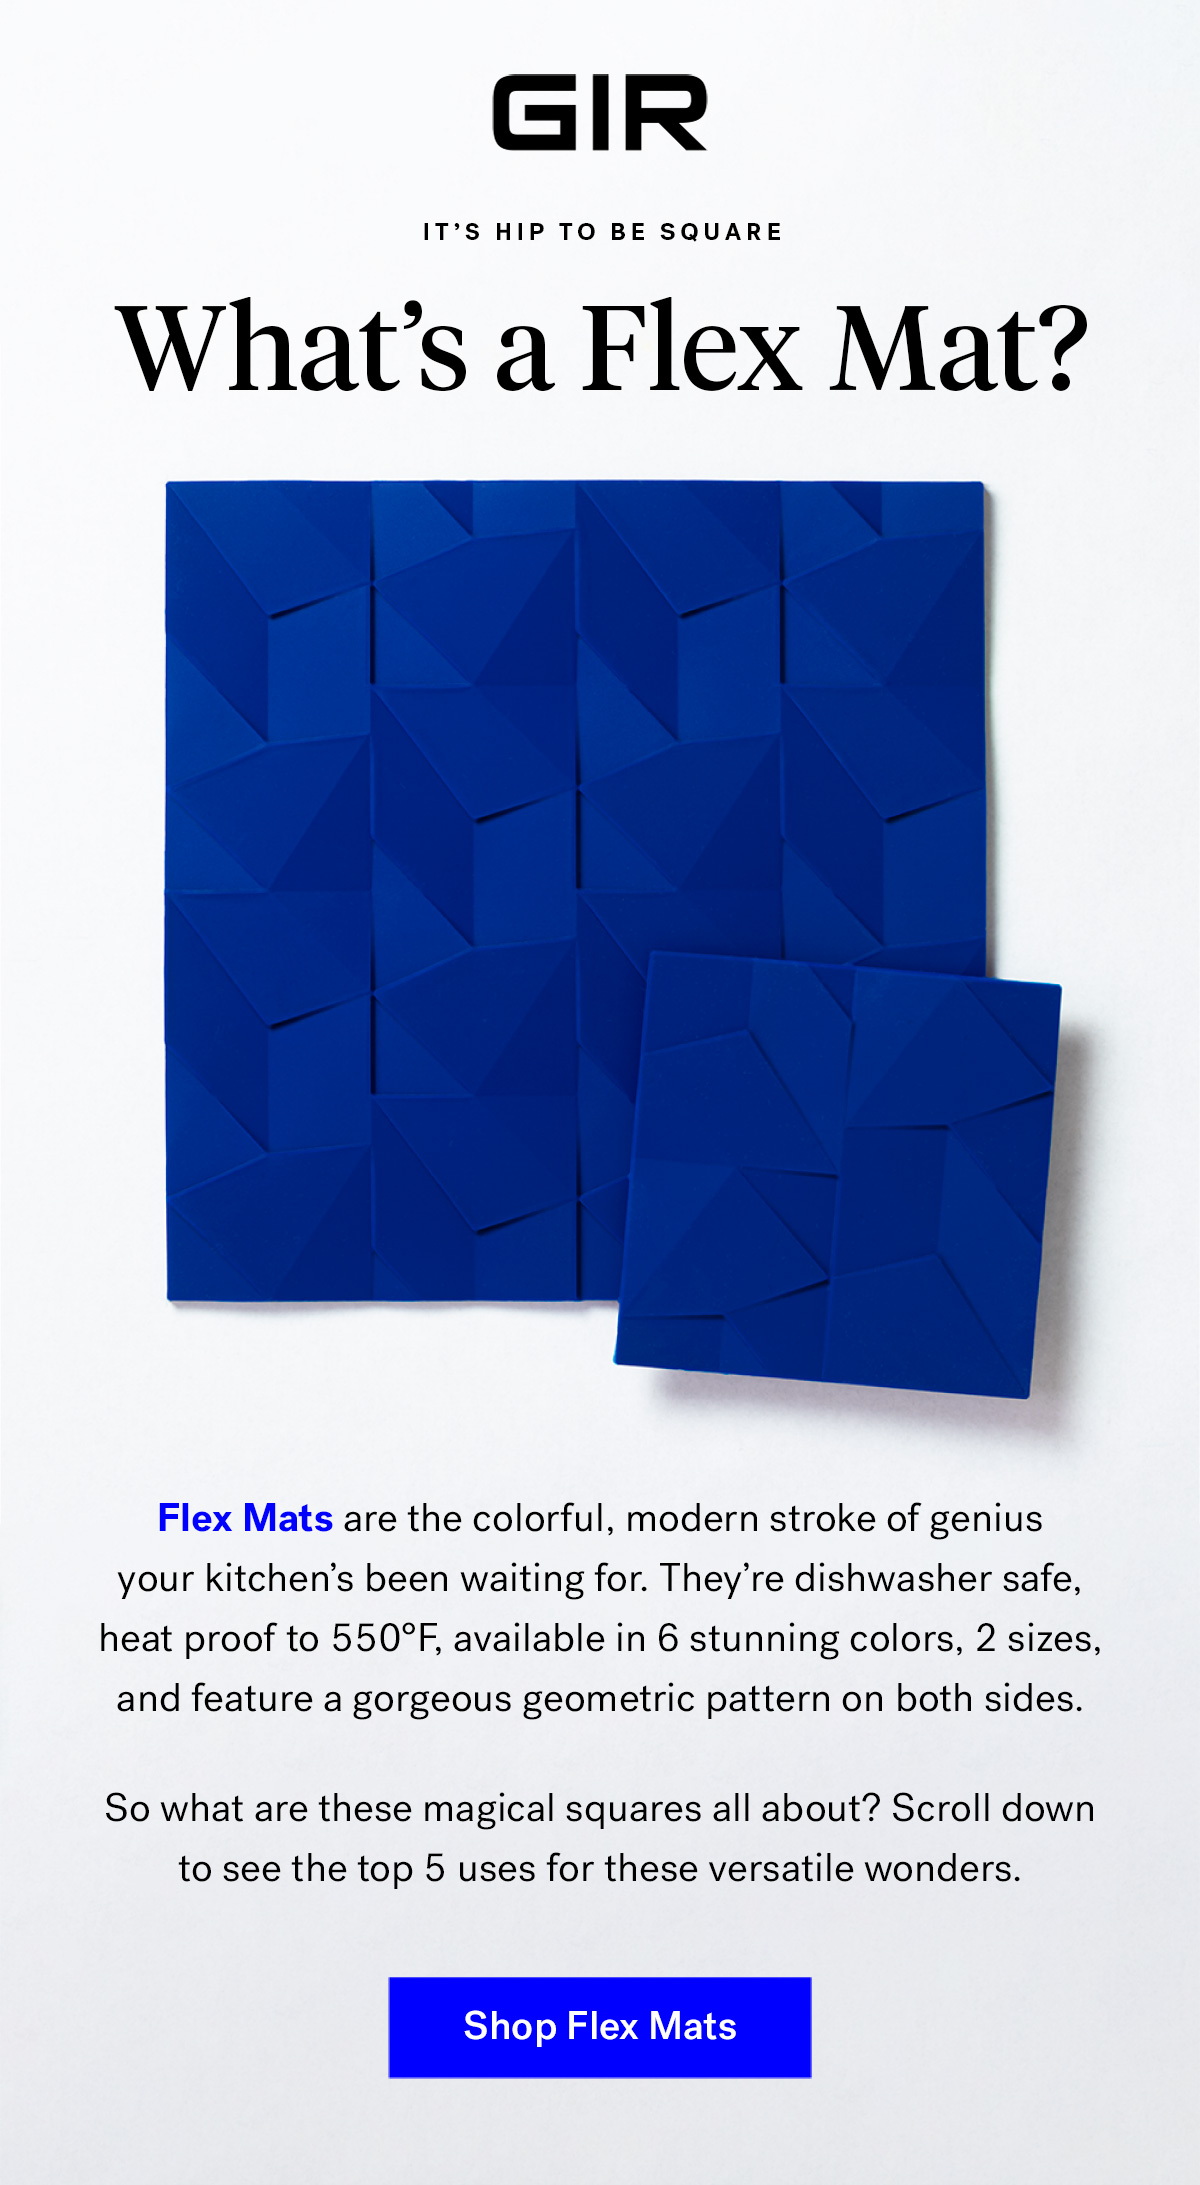 GIR: Get It Right